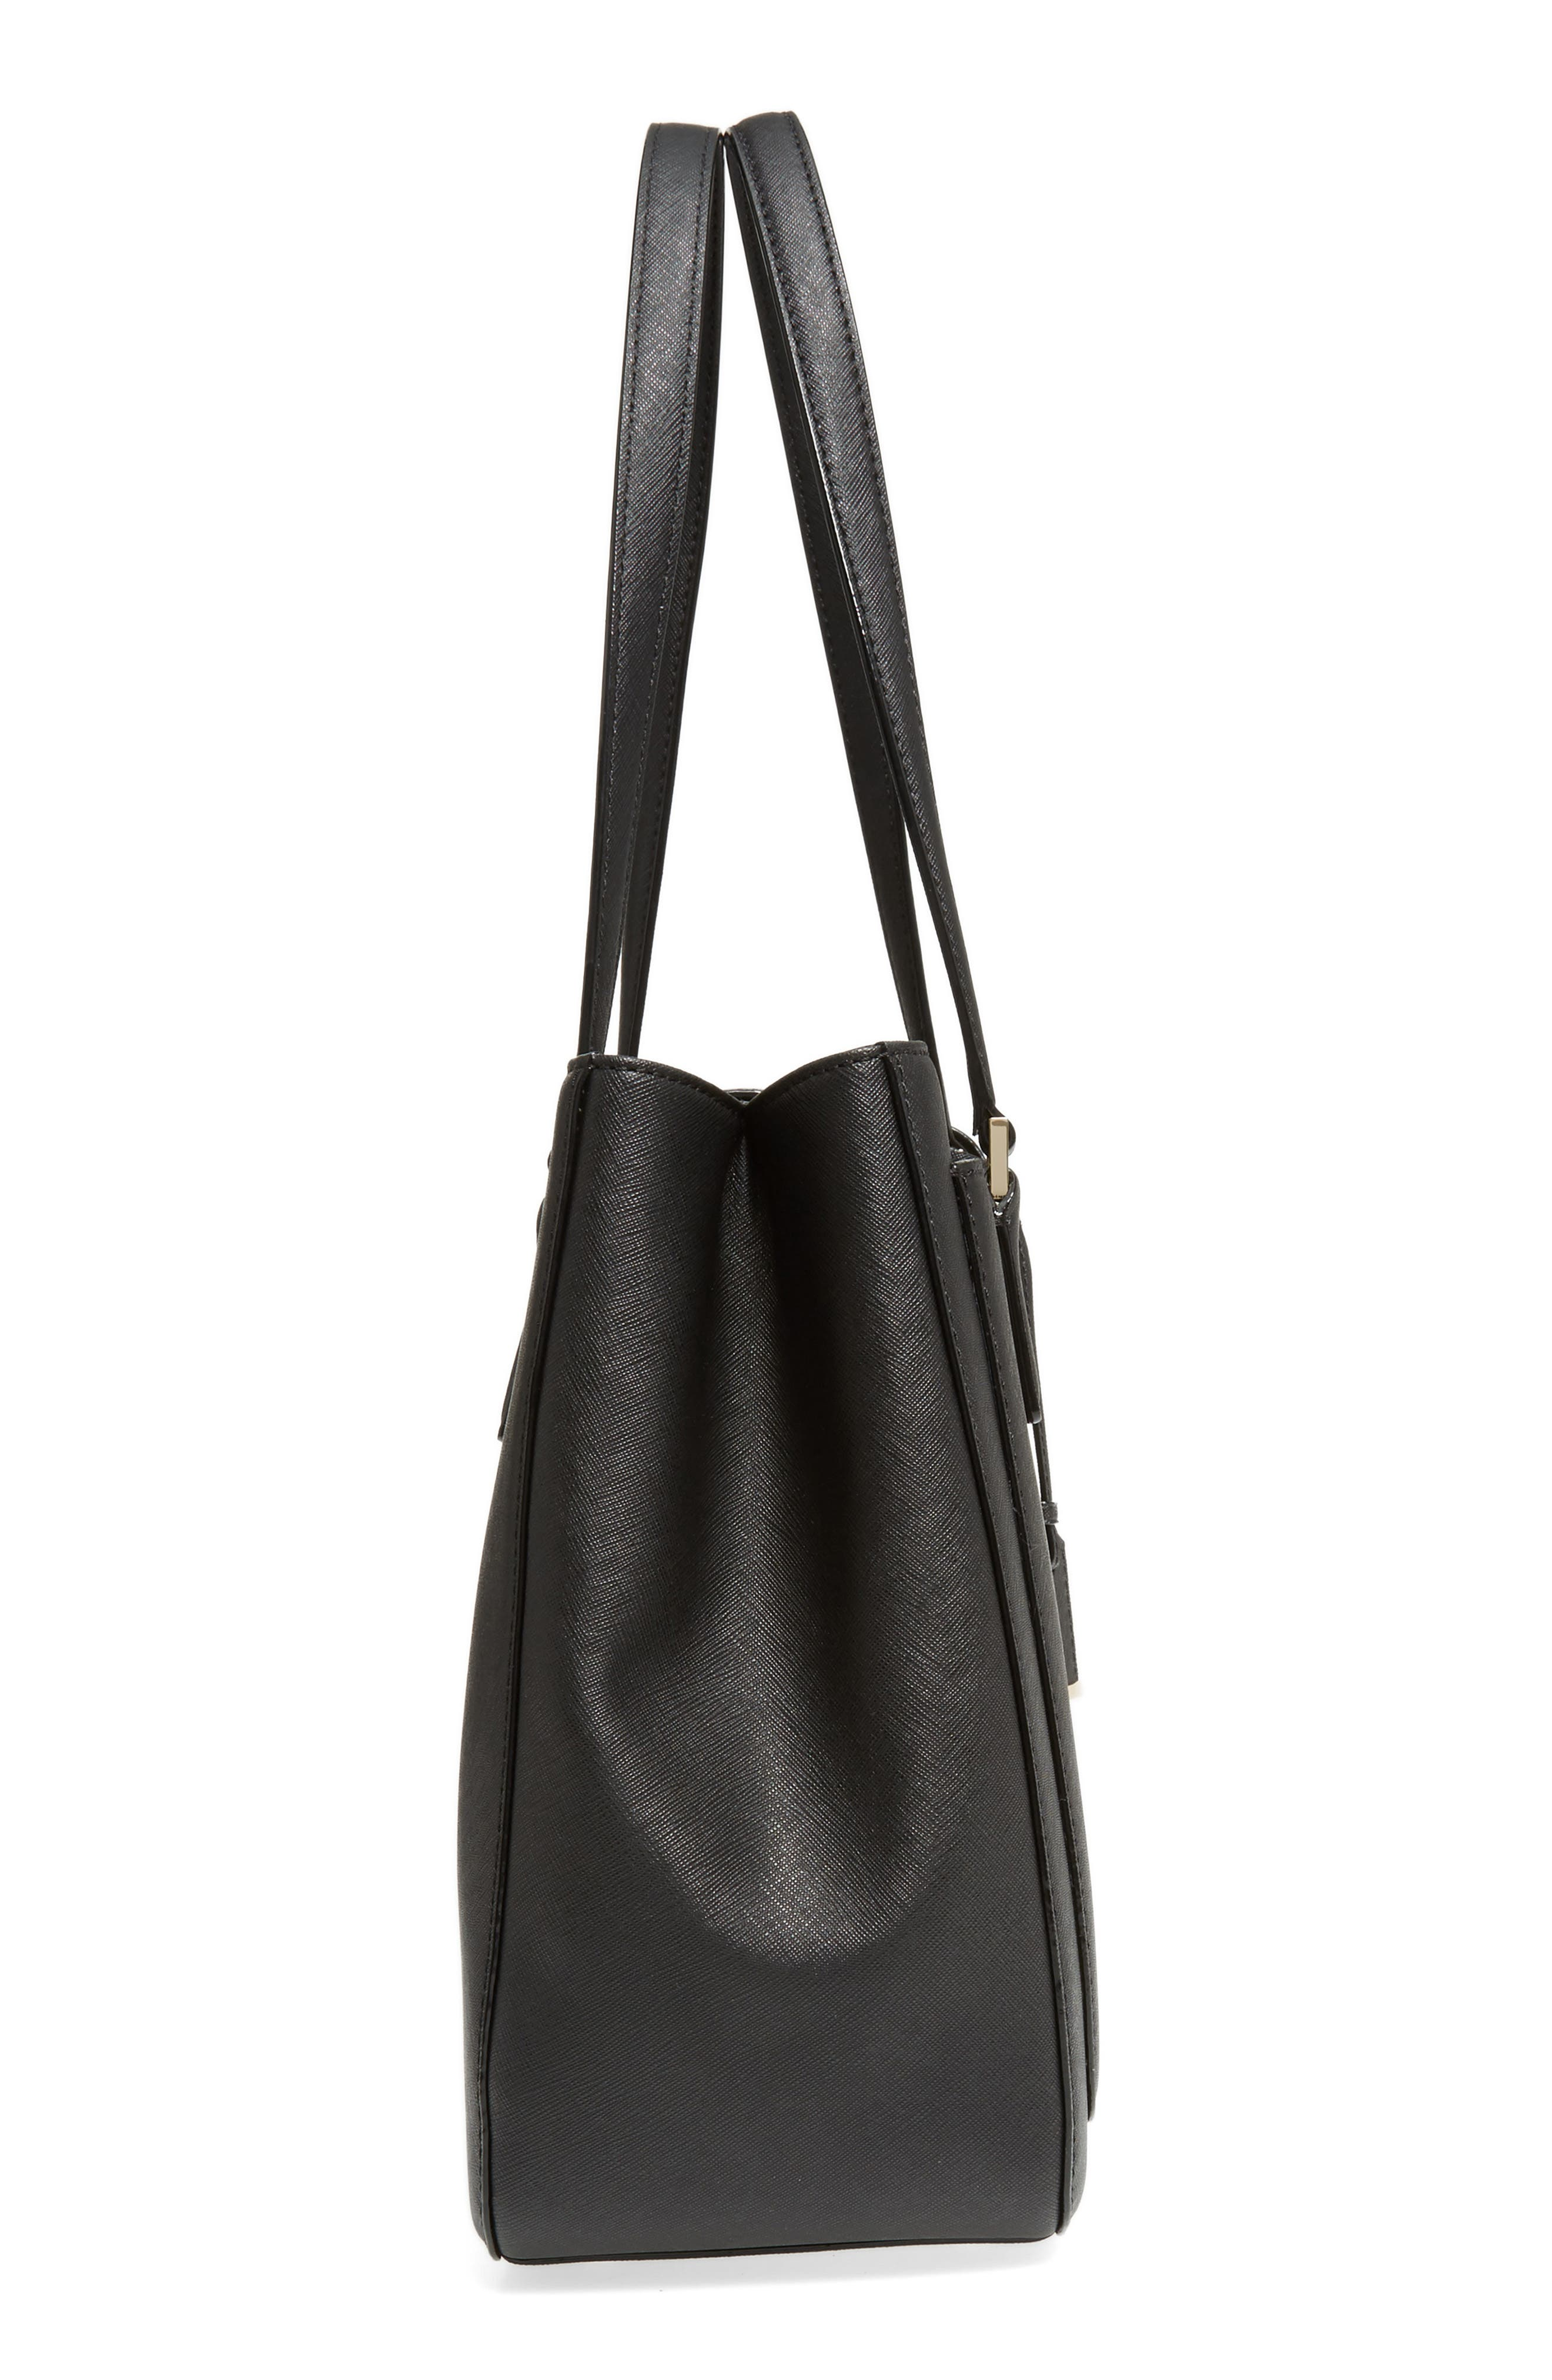 cameron street - zooey leather tote,                             Alternate thumbnail 5, color,                             Black